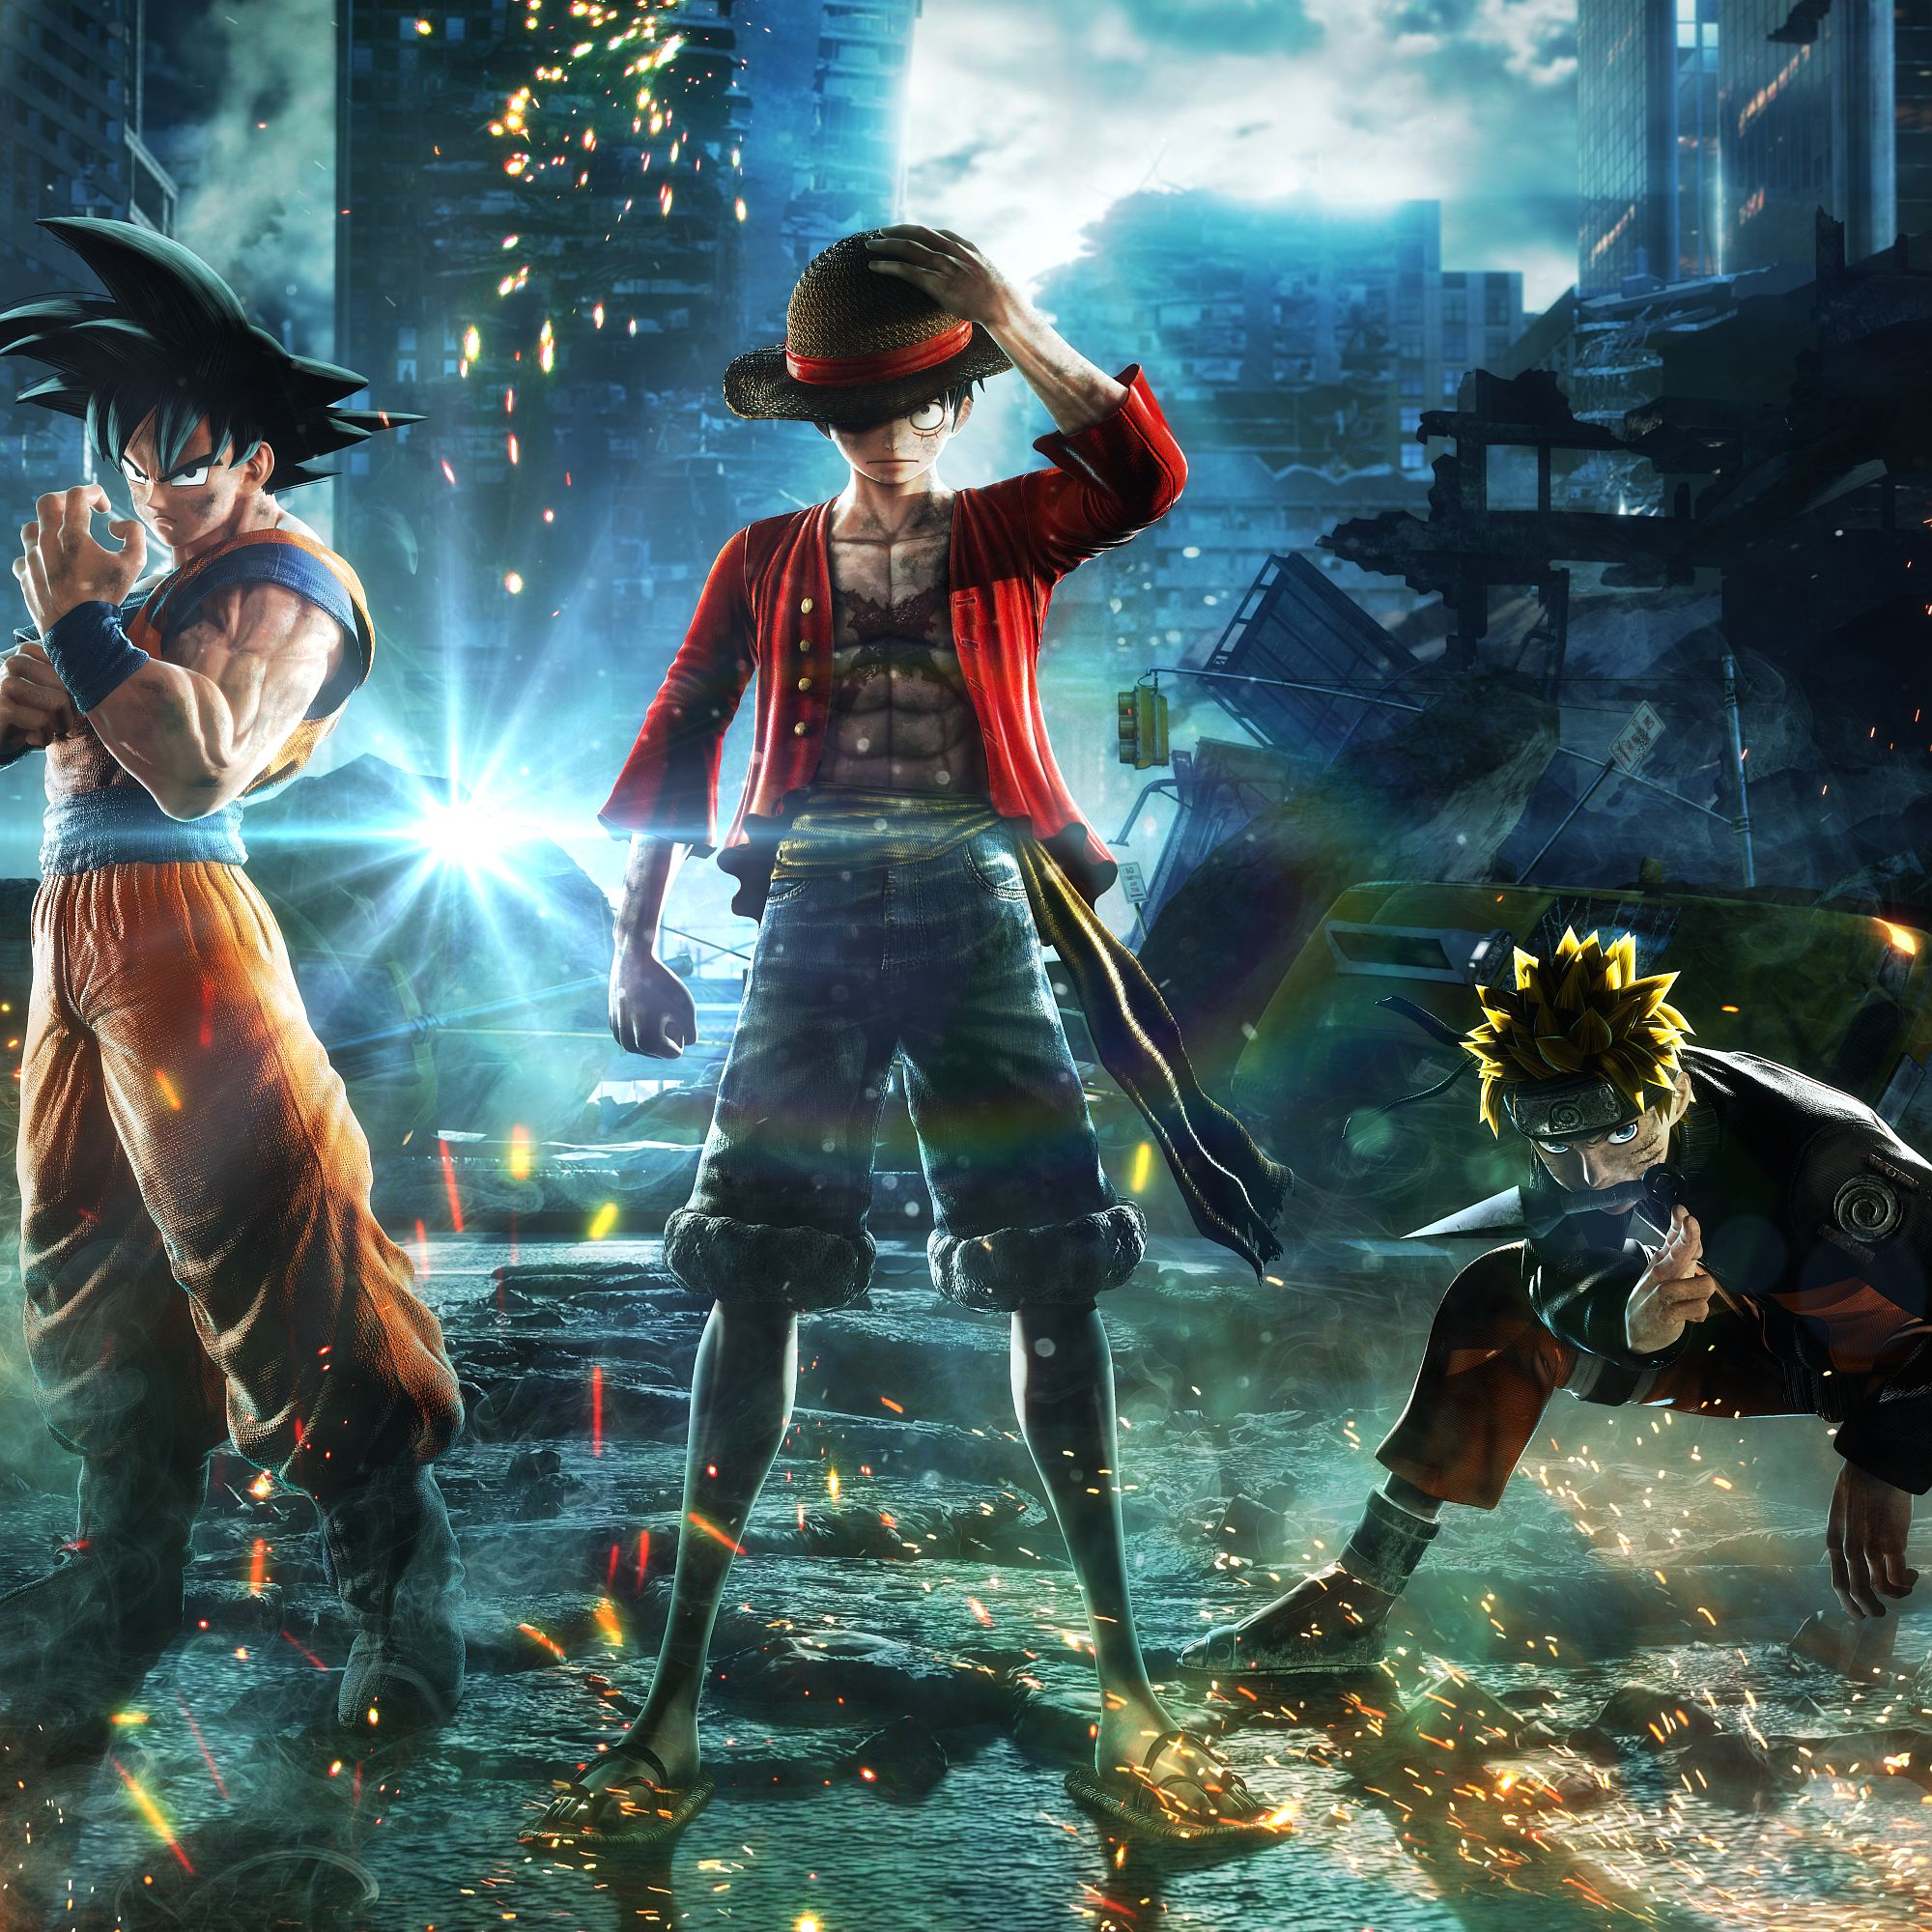 For the first time ever, the most famous manga heroes are thrown into a whole new battleground: our world. Uniting to fight the most dangerous threat, the incredibly popular characters of Jump Force will bear the fate of the entire human kind. Jump Force celebrates the 50th Anniversary of the famous Weekly Jump Magazine with an alliance of heroes from Dragon Ball, One Piece, Naruto and much more. Players will be able to create their three-character manga/anime dream tag team and take them into battle in hyper-stylish arena brawls set against backdrops of famous landmarks around the world including New York City's Times Square and the Matterhorn in the Alps.  <p> The lines that separate our world from the Jump world have been blurred, with evil forces spilling into the real world to rule over humanity. The greatest heroes known to manga/anime including Goku, Luffy, Naruto, as well as many others to be announced, must join together to triumph over the forces of evil seeping in from the Jump world.